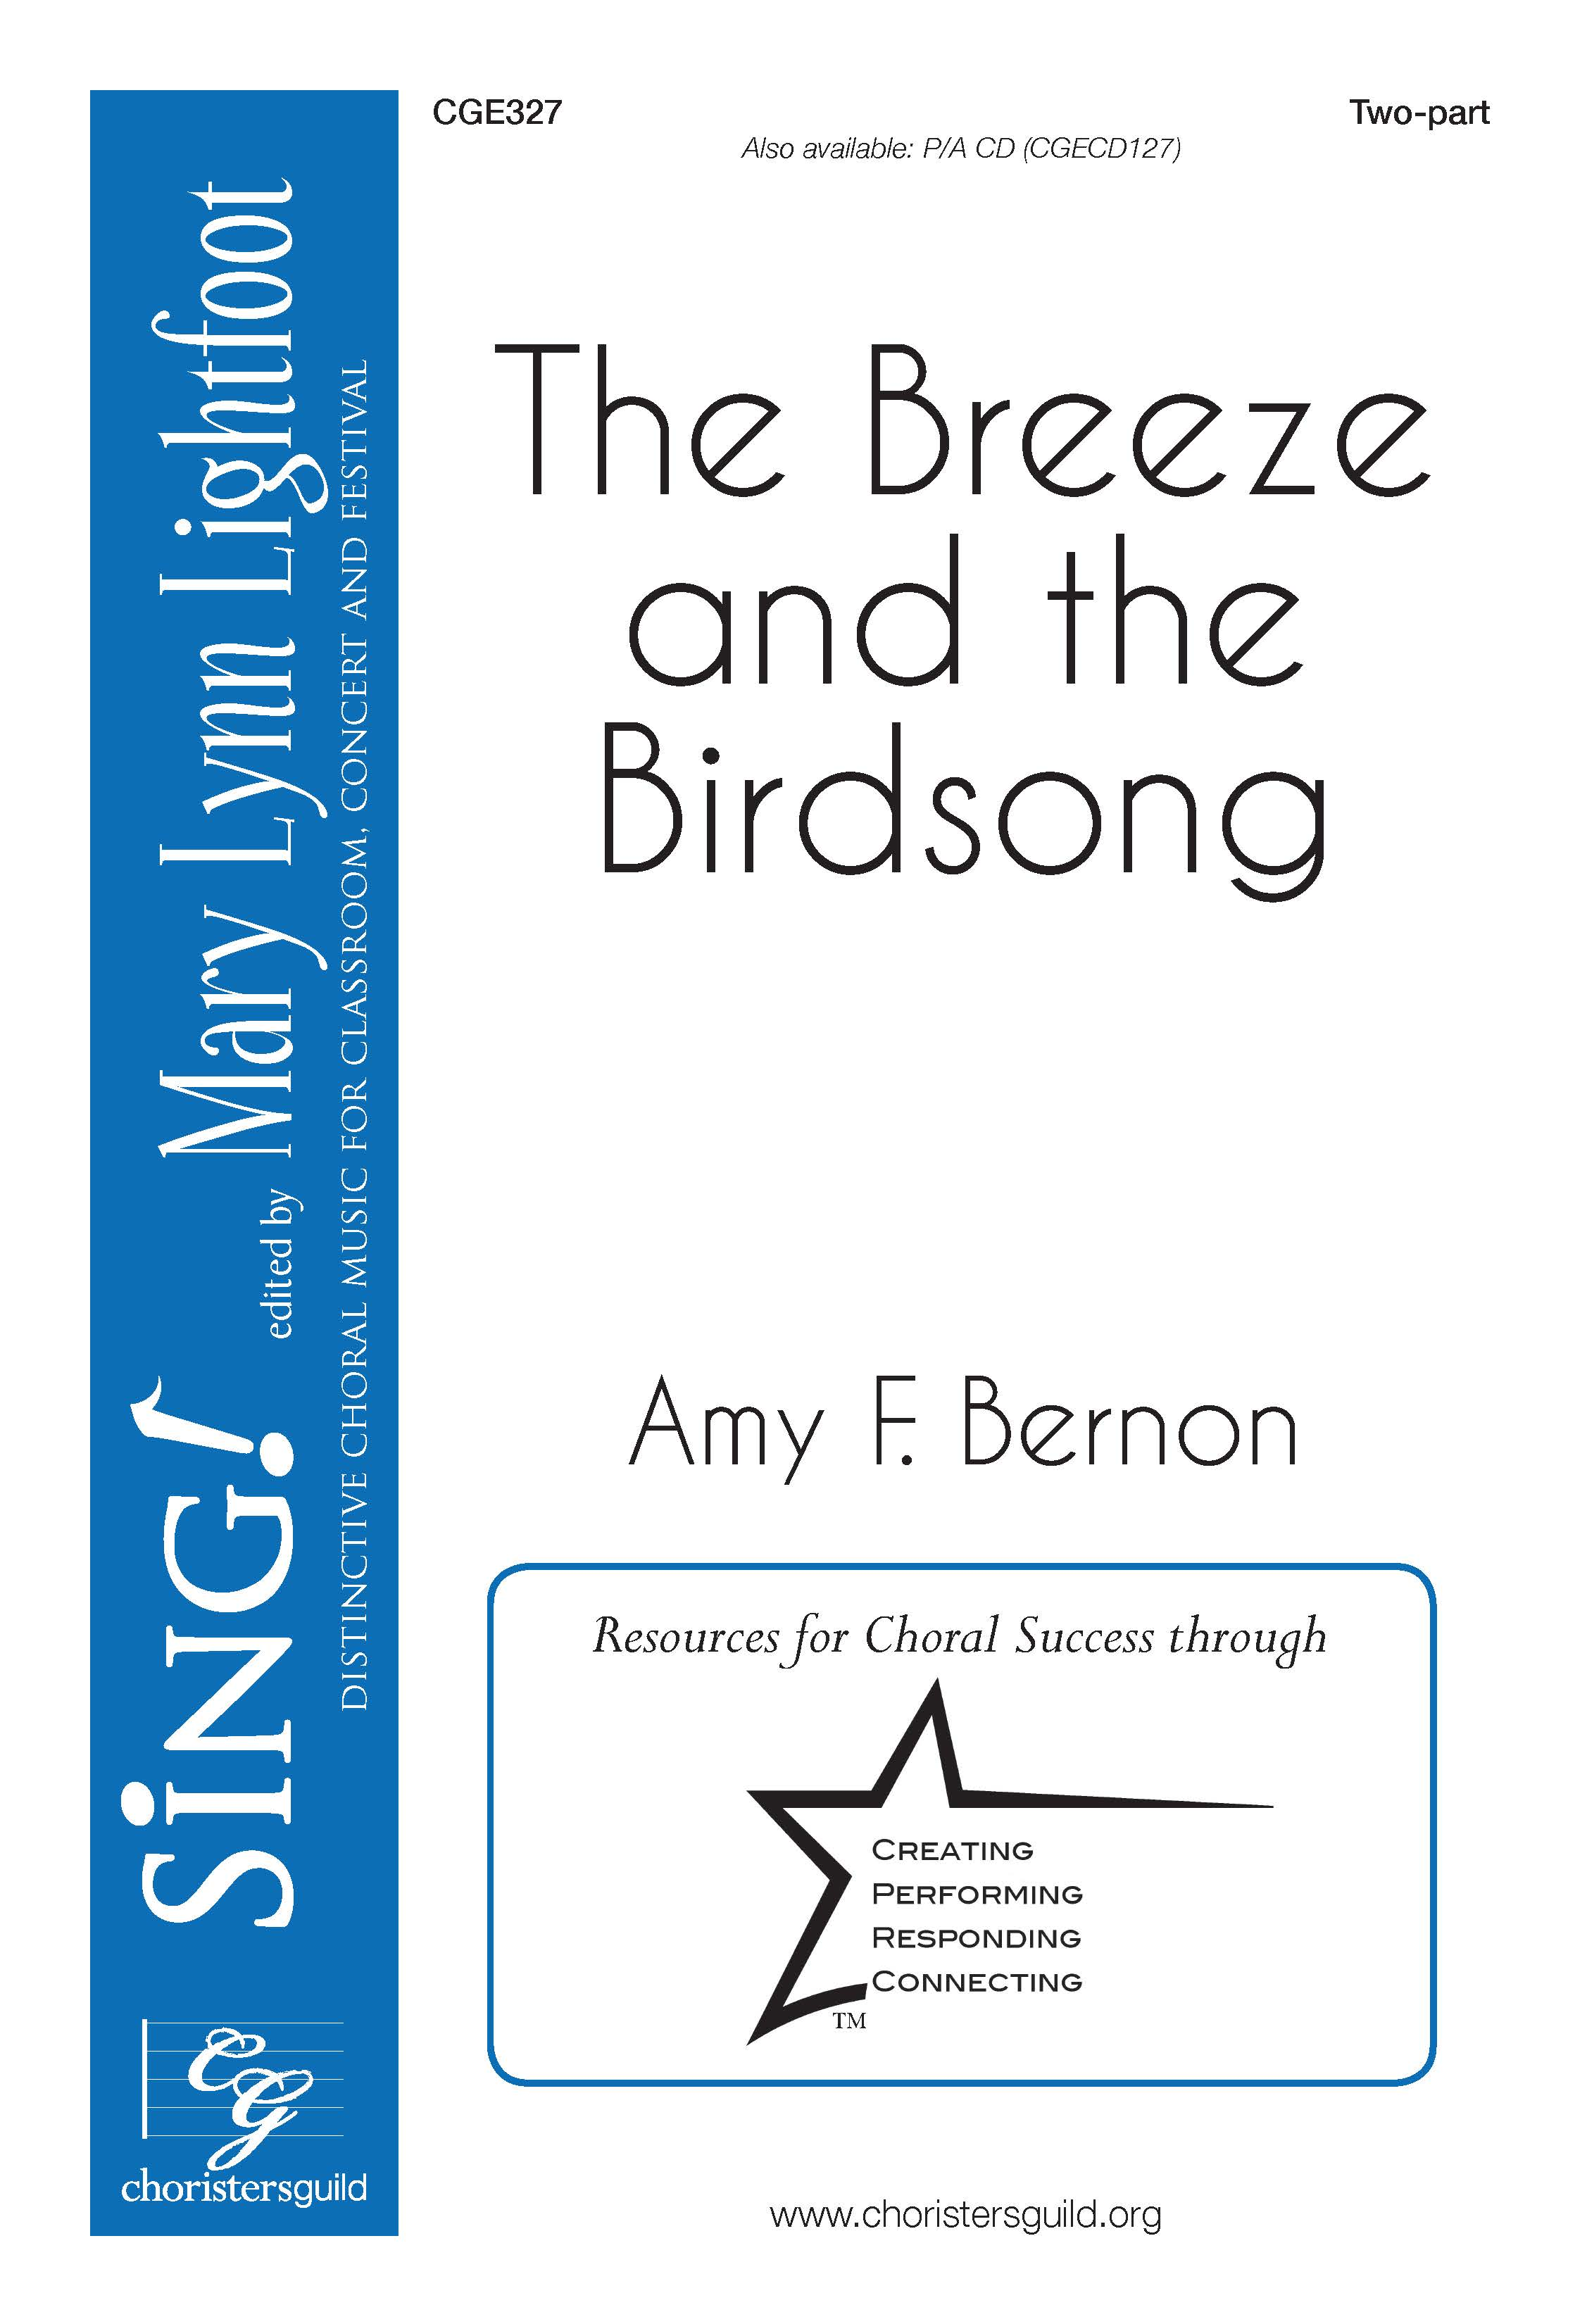 The Breeze and the Birdsong - Two-part